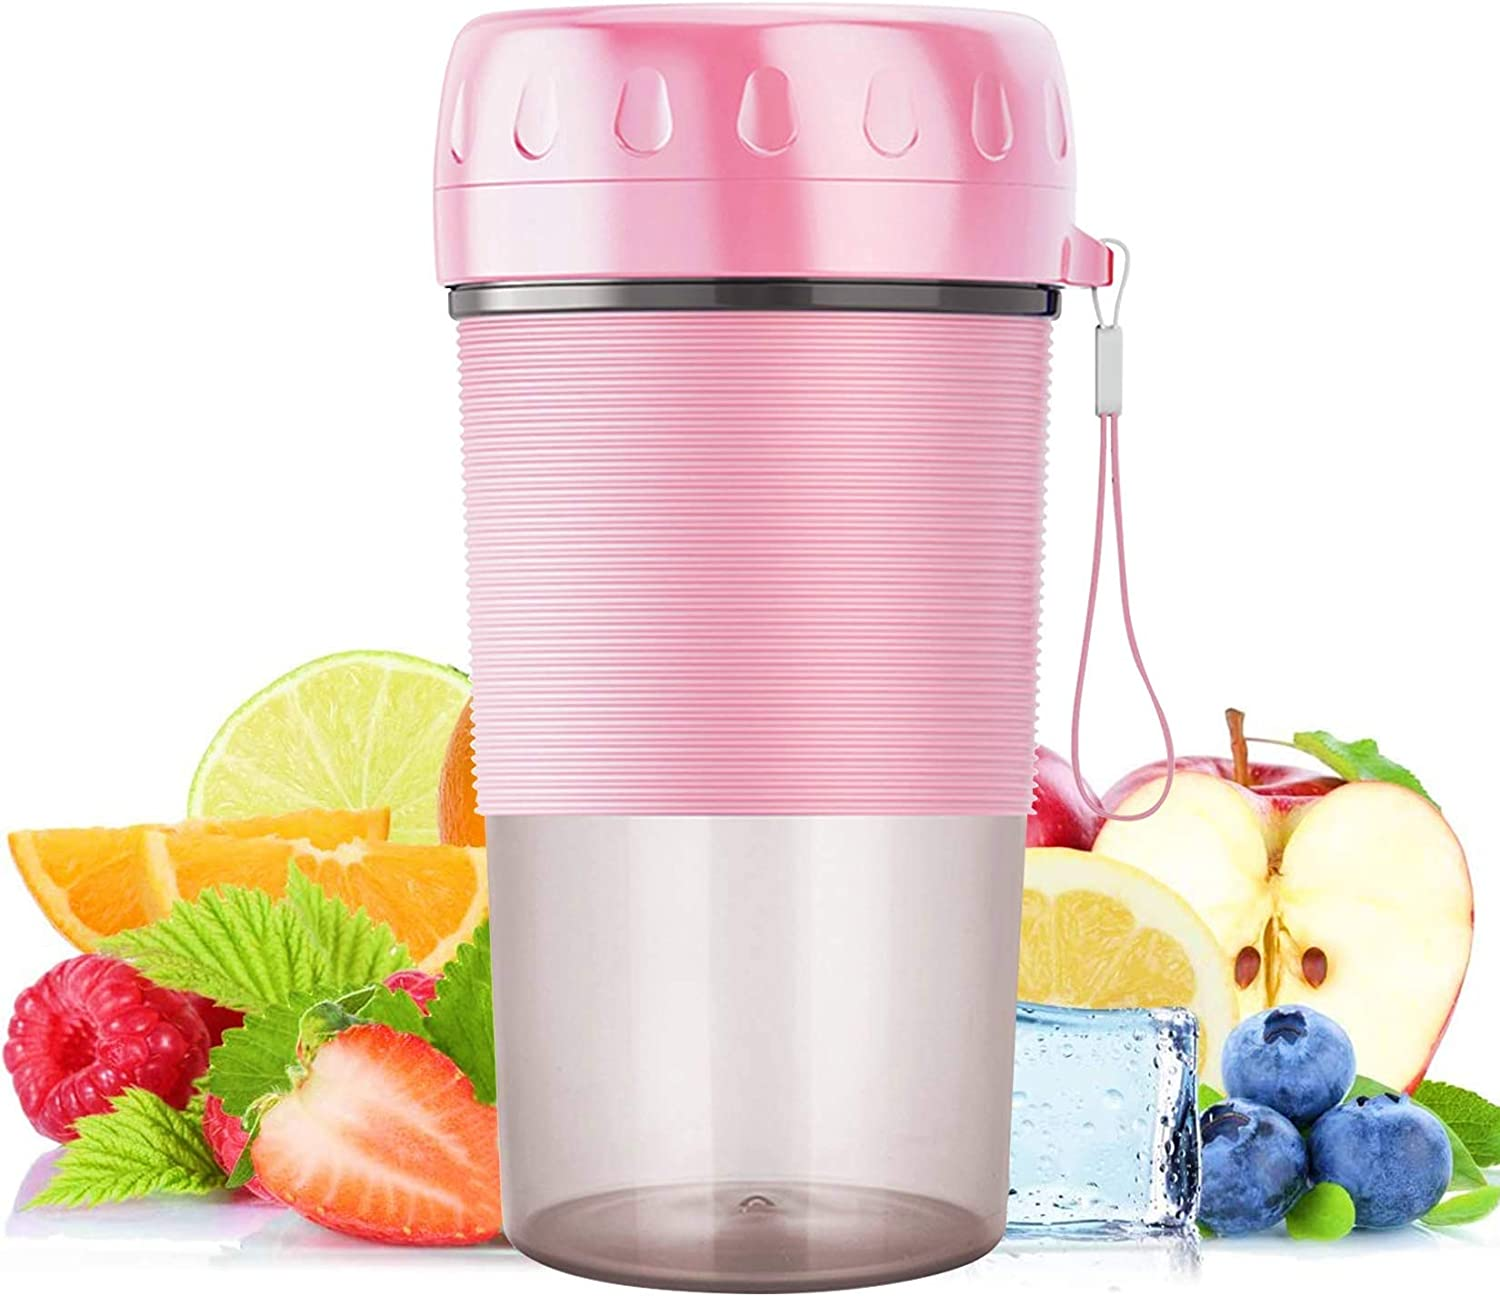 Portable Blender,Terunat Mini Personal Blender for Shakes and Smoothies,Juicer Cup Mixer,Smoothies Maker Fruit Blender Cup,USB Rechargeable, 10oz/300ml ,for Gym,Travel,Home,Outdoors,Office (Pink)